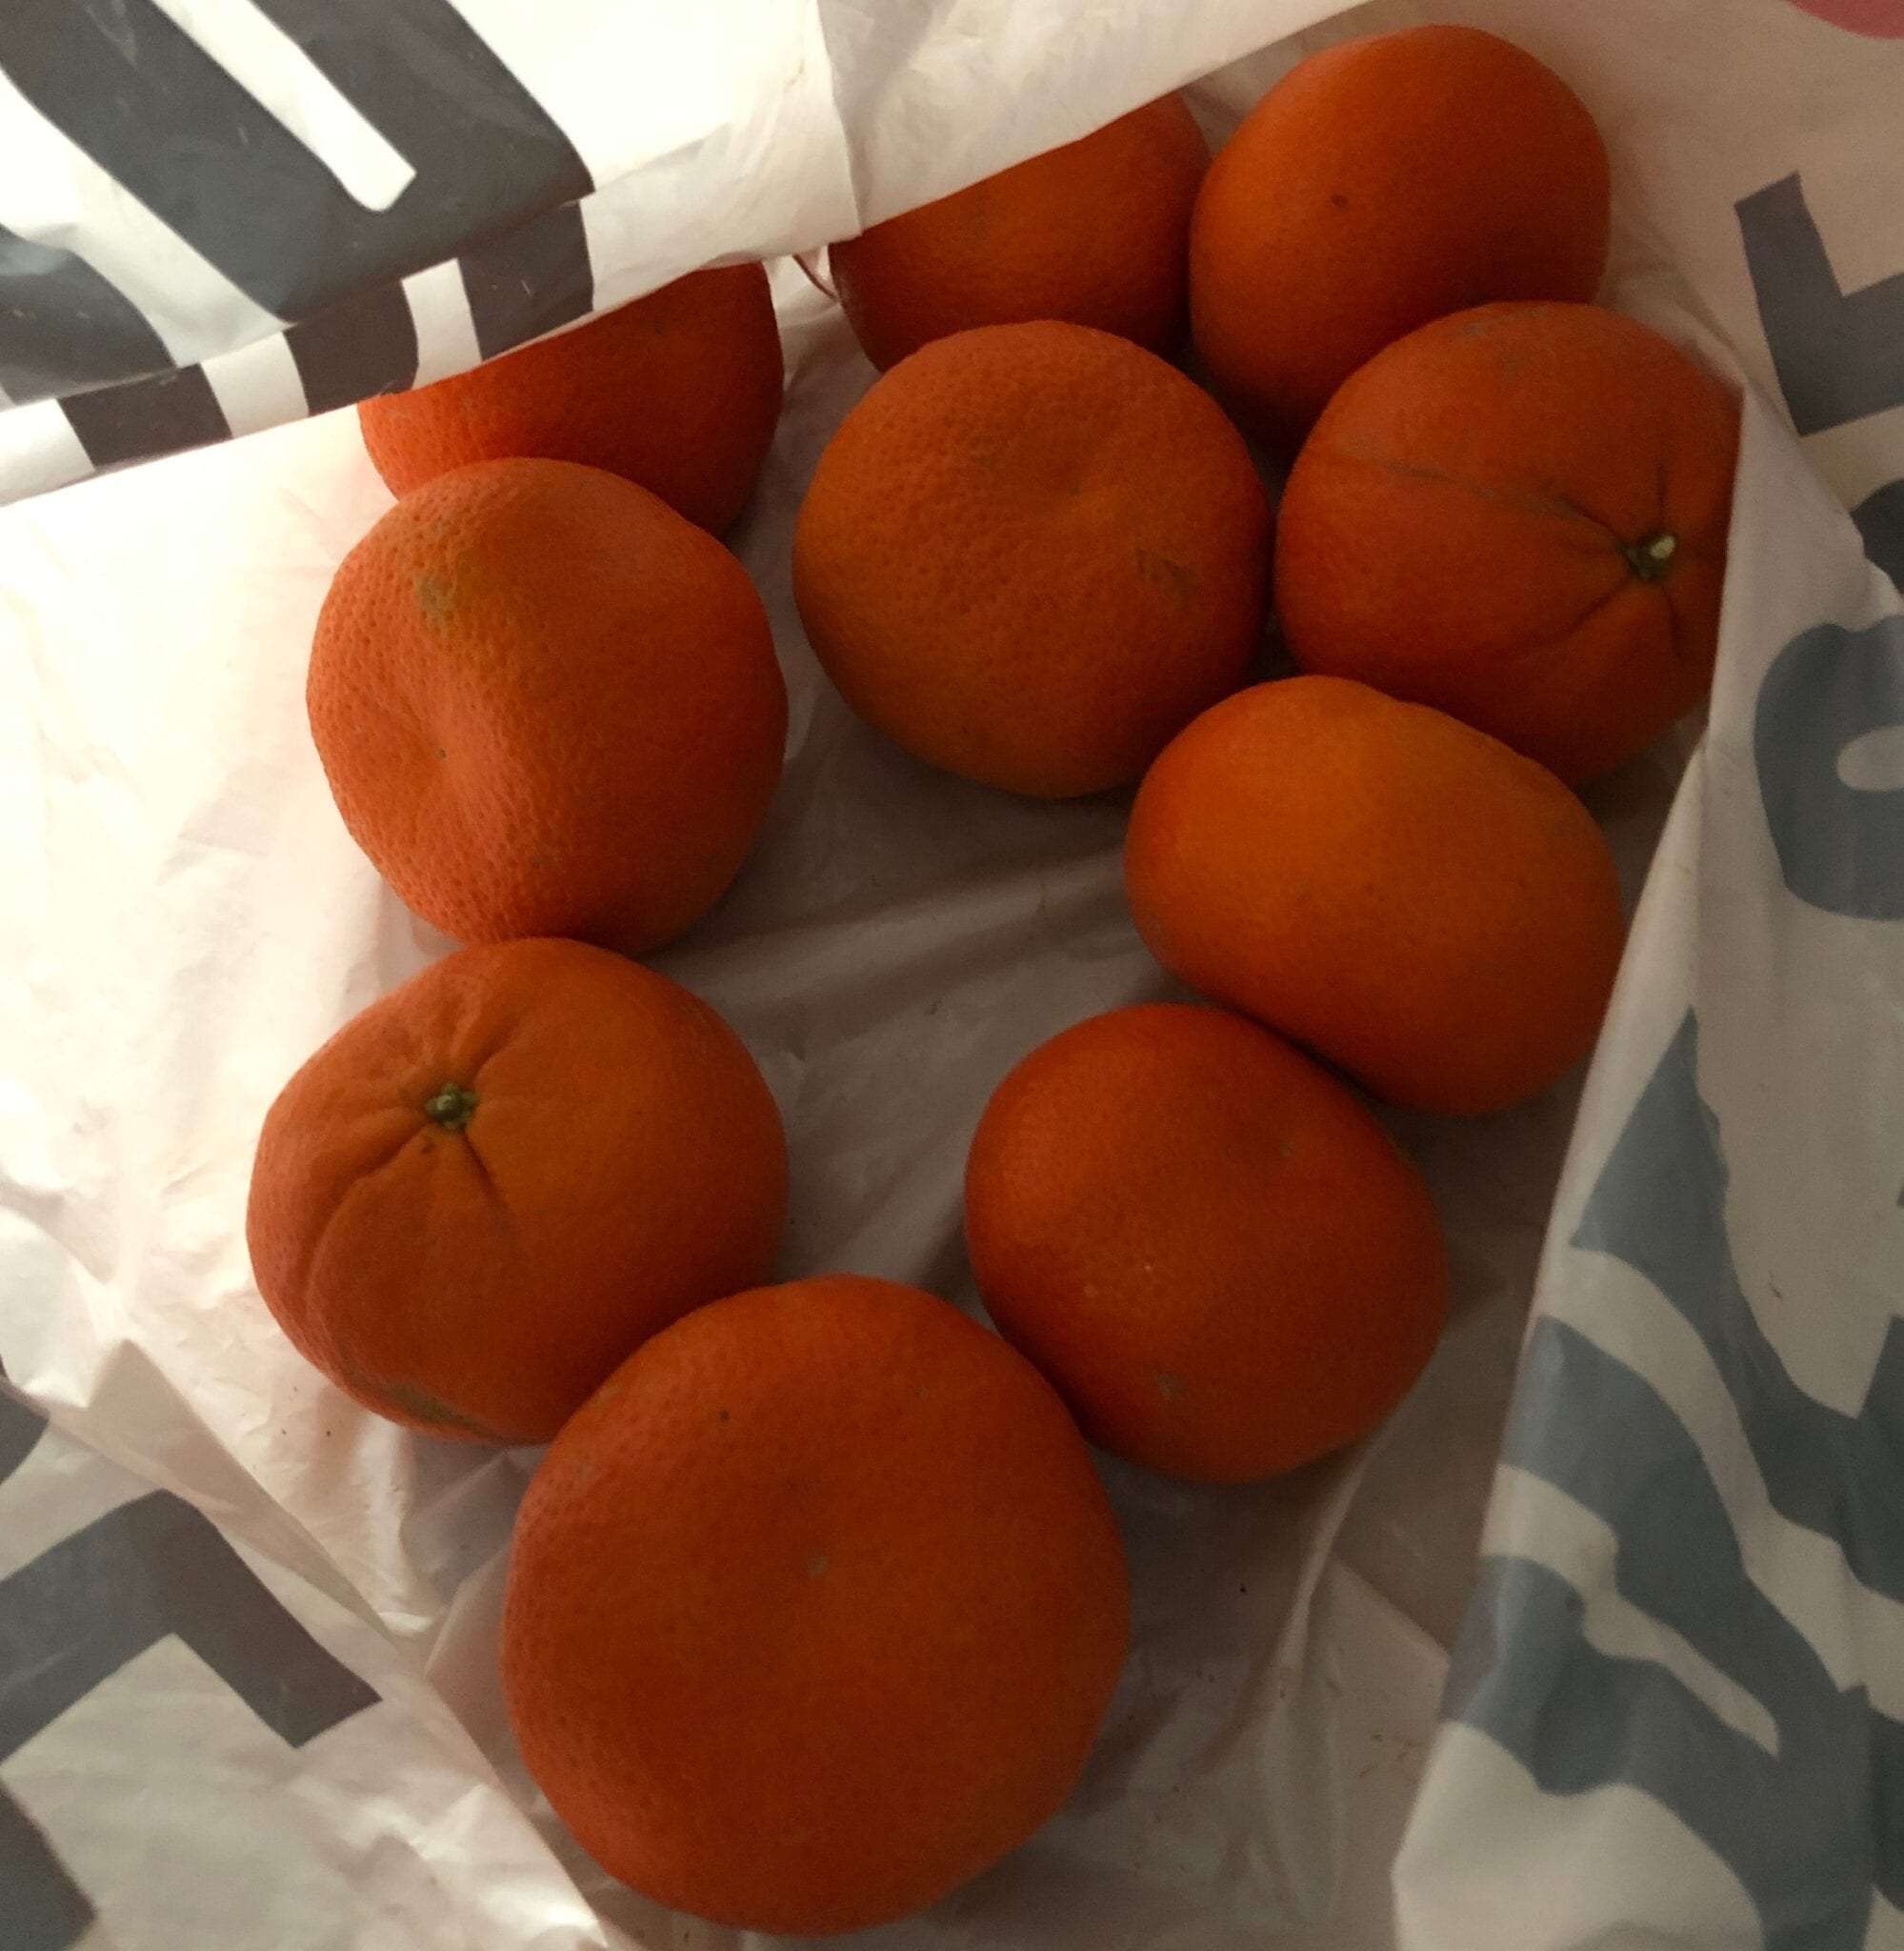 This bag of premium quality seedless mandarins will be the last crop grown, as the water has run out on the lower Darling River.